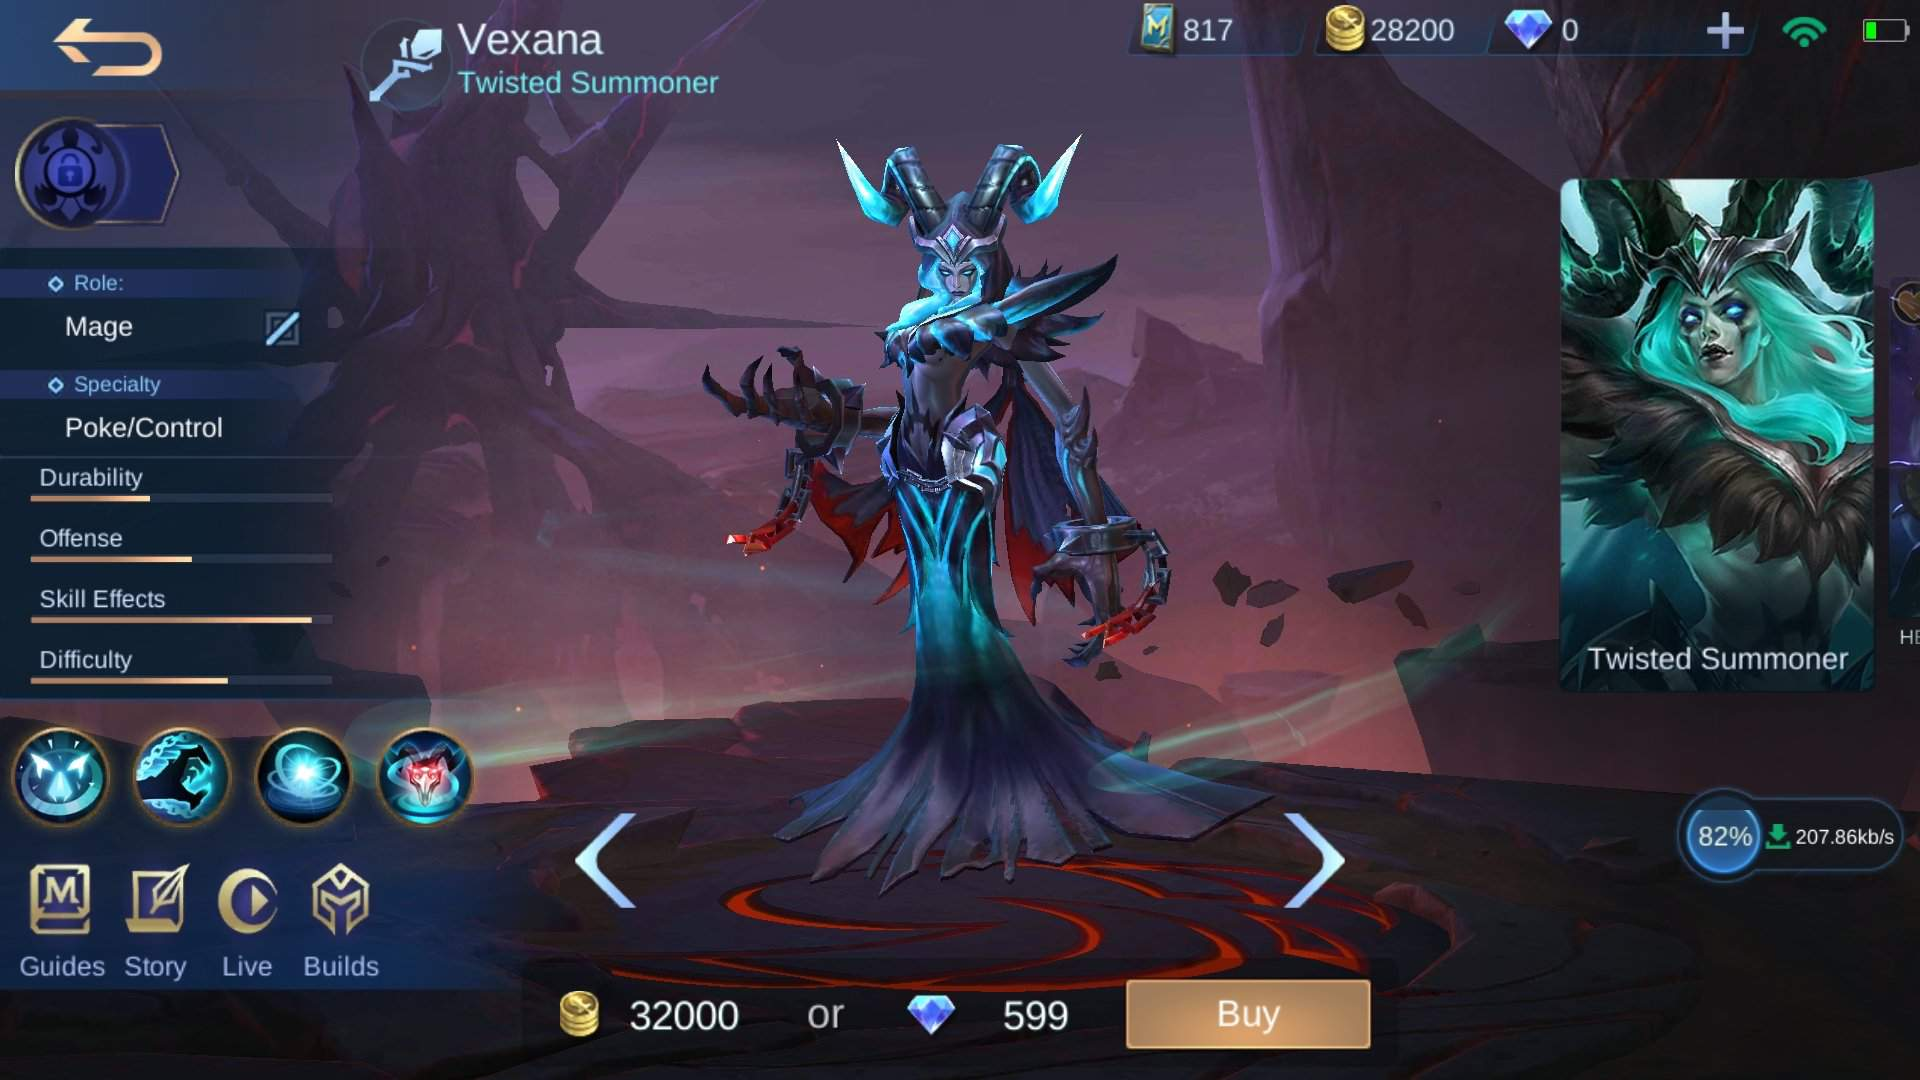 When Vexana And Minotaur Will Get New Skins Mobile Legends Amino Amino